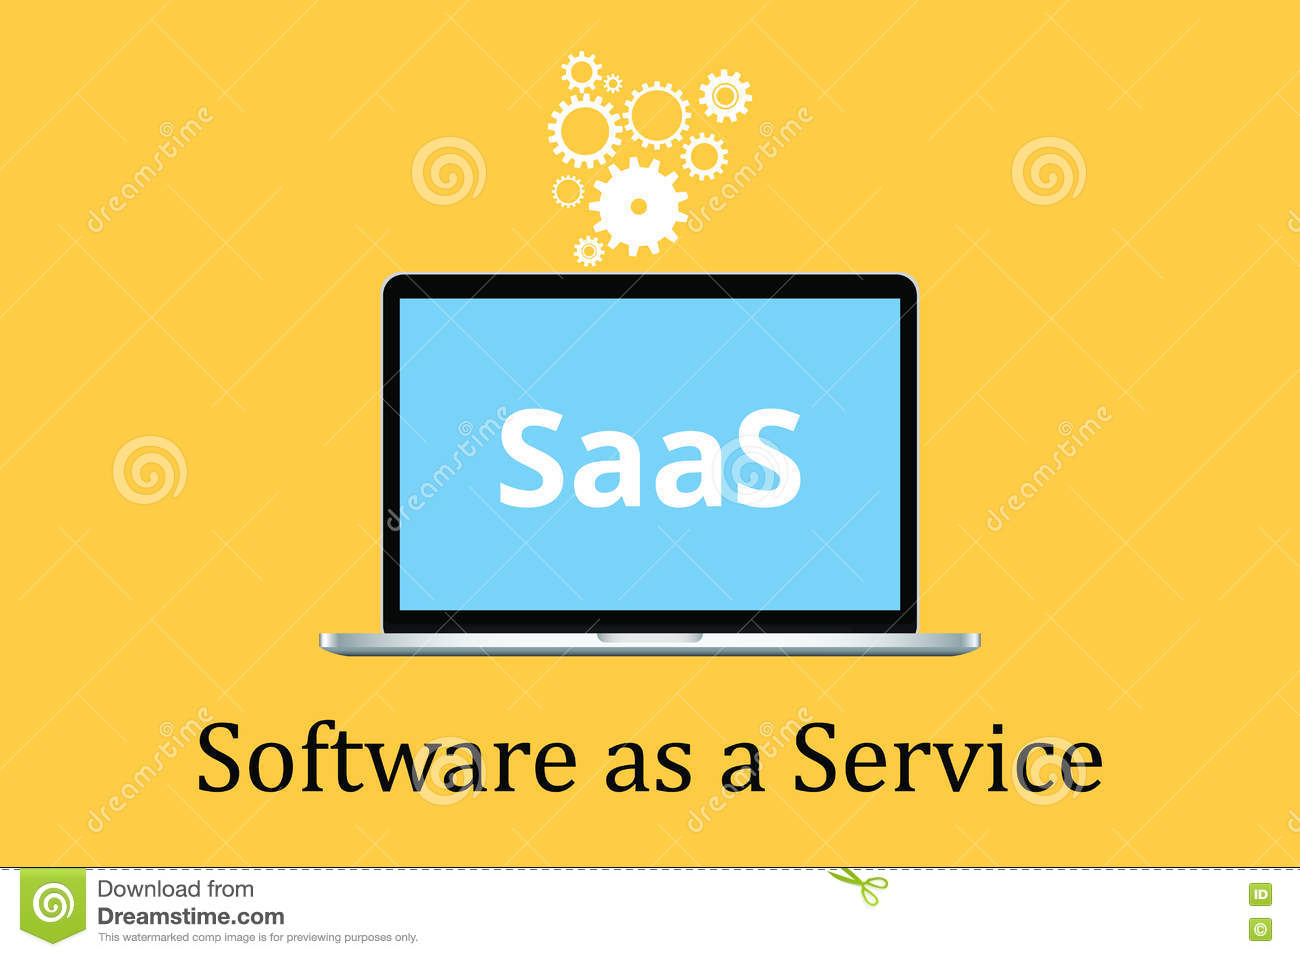 Saas software as a service concept with laptop and poster text gear icon